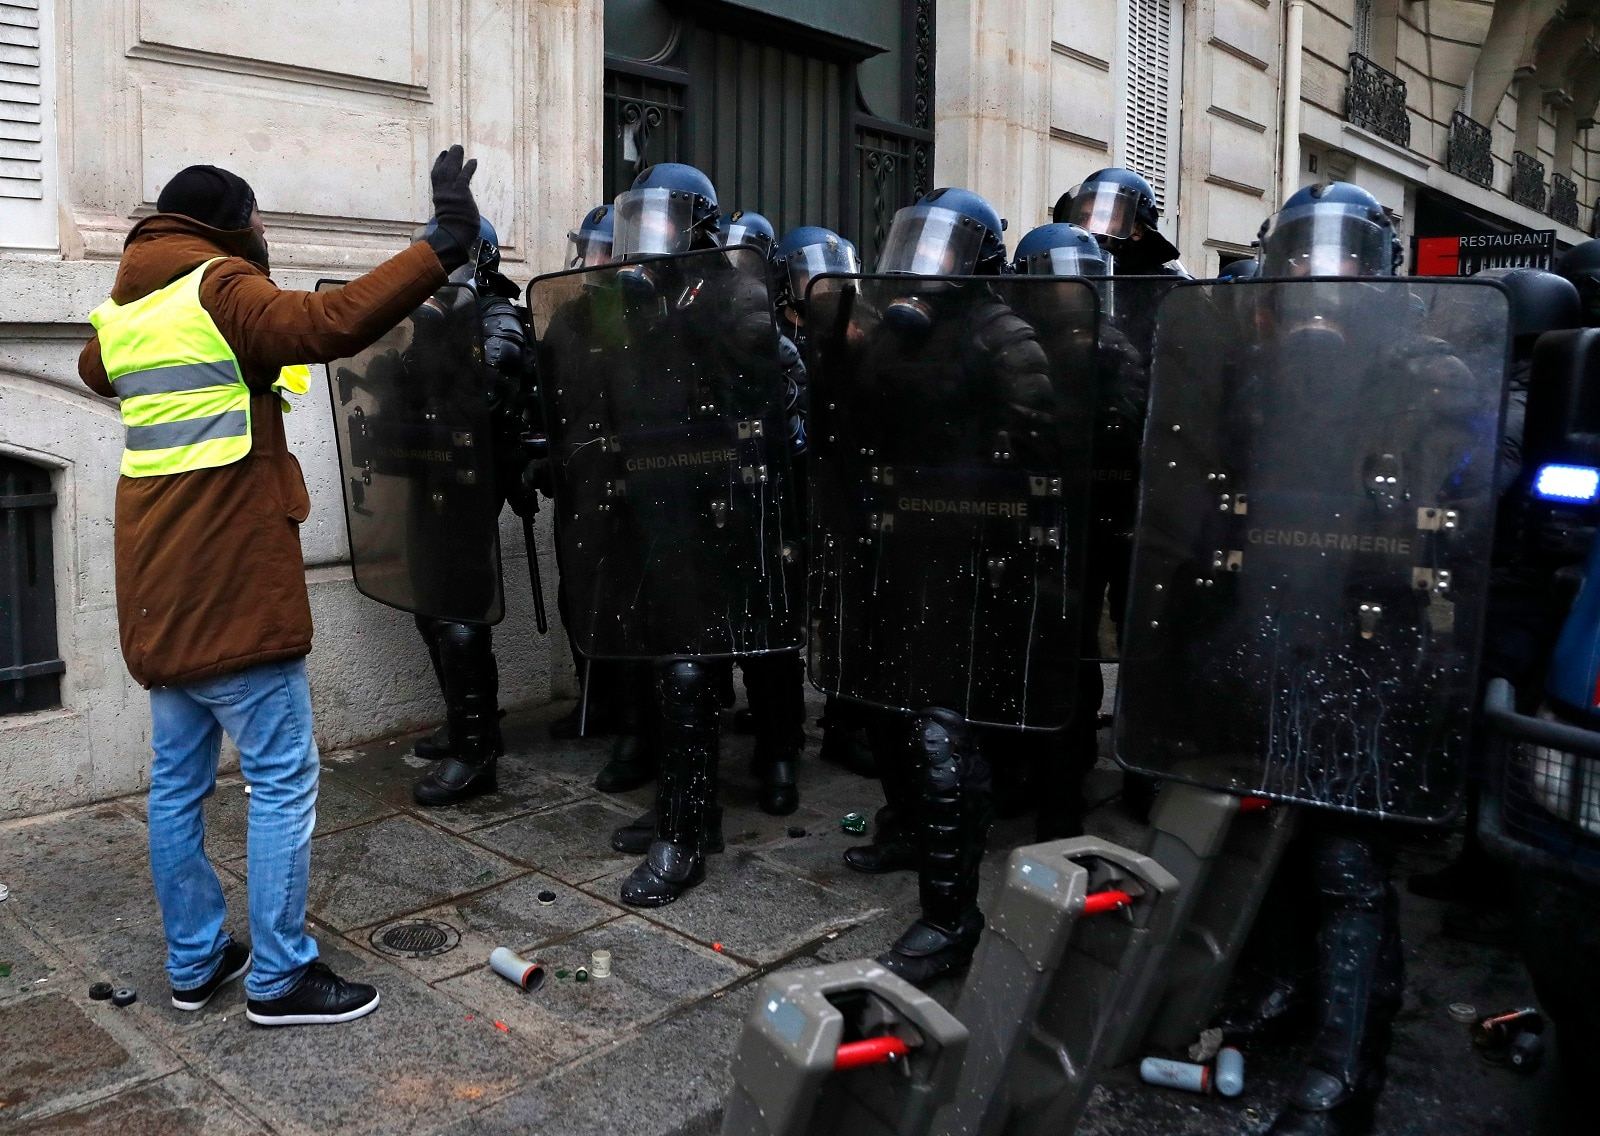 Police officers block a demonstrator wearing yellow vests. (AP Photo/Thibault Camus)